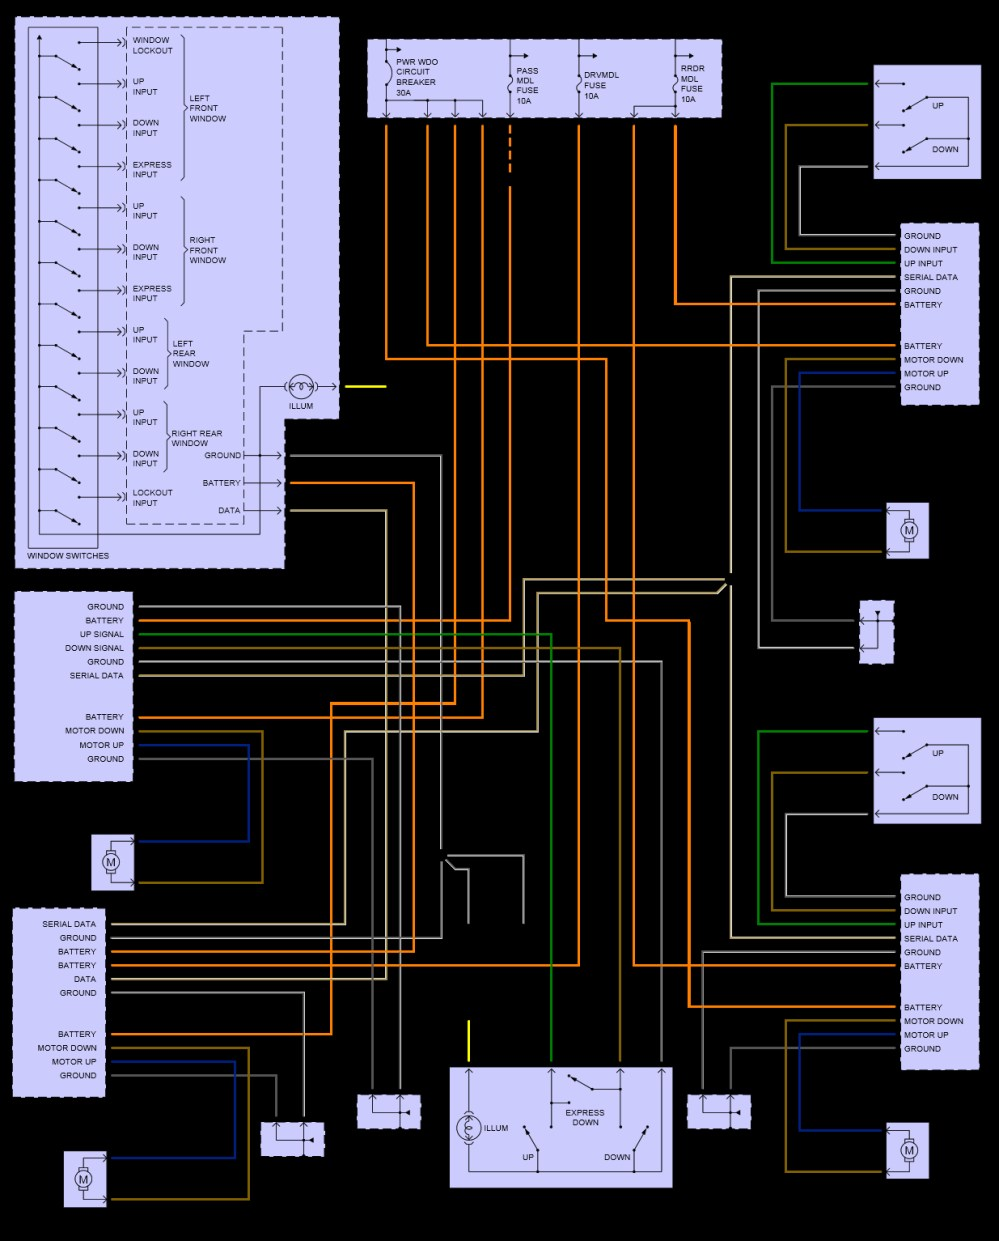 medium resolution of 2001 buick century stereo wiring diagram collection stereo wiring diagram for 2002 buick regal throughout